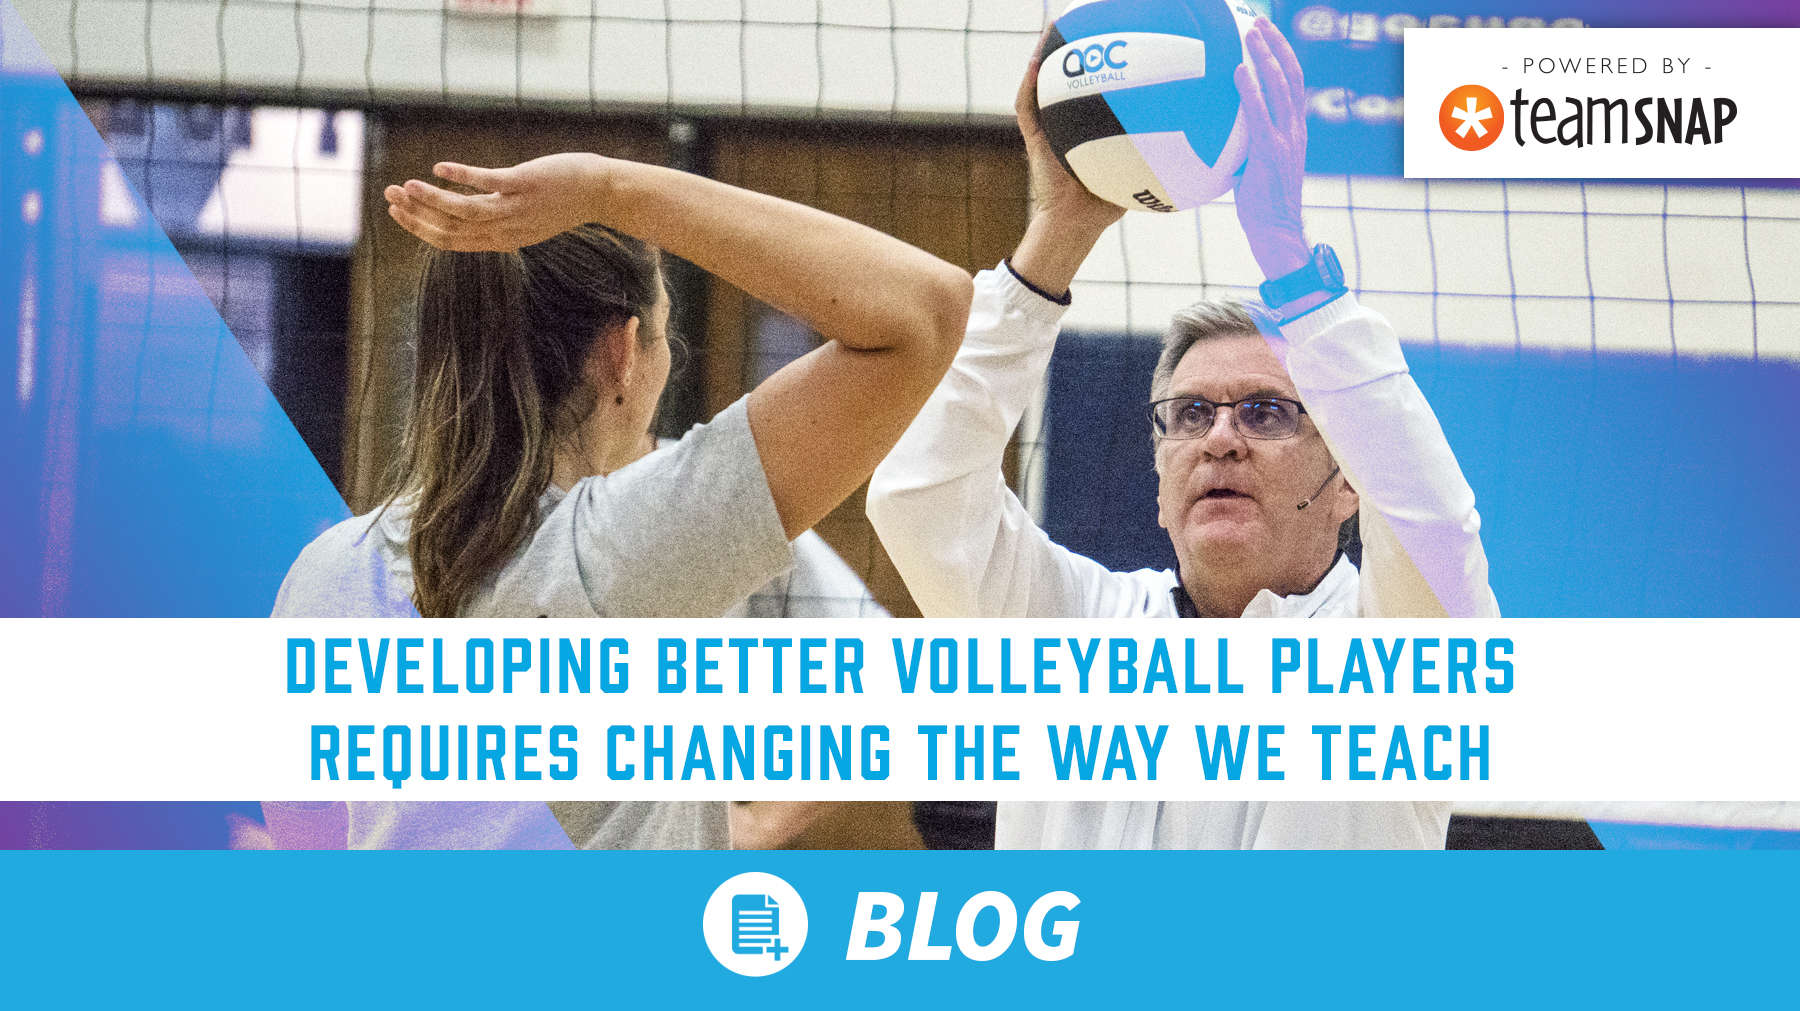 Developing better volleyball players requires changing the way we teach